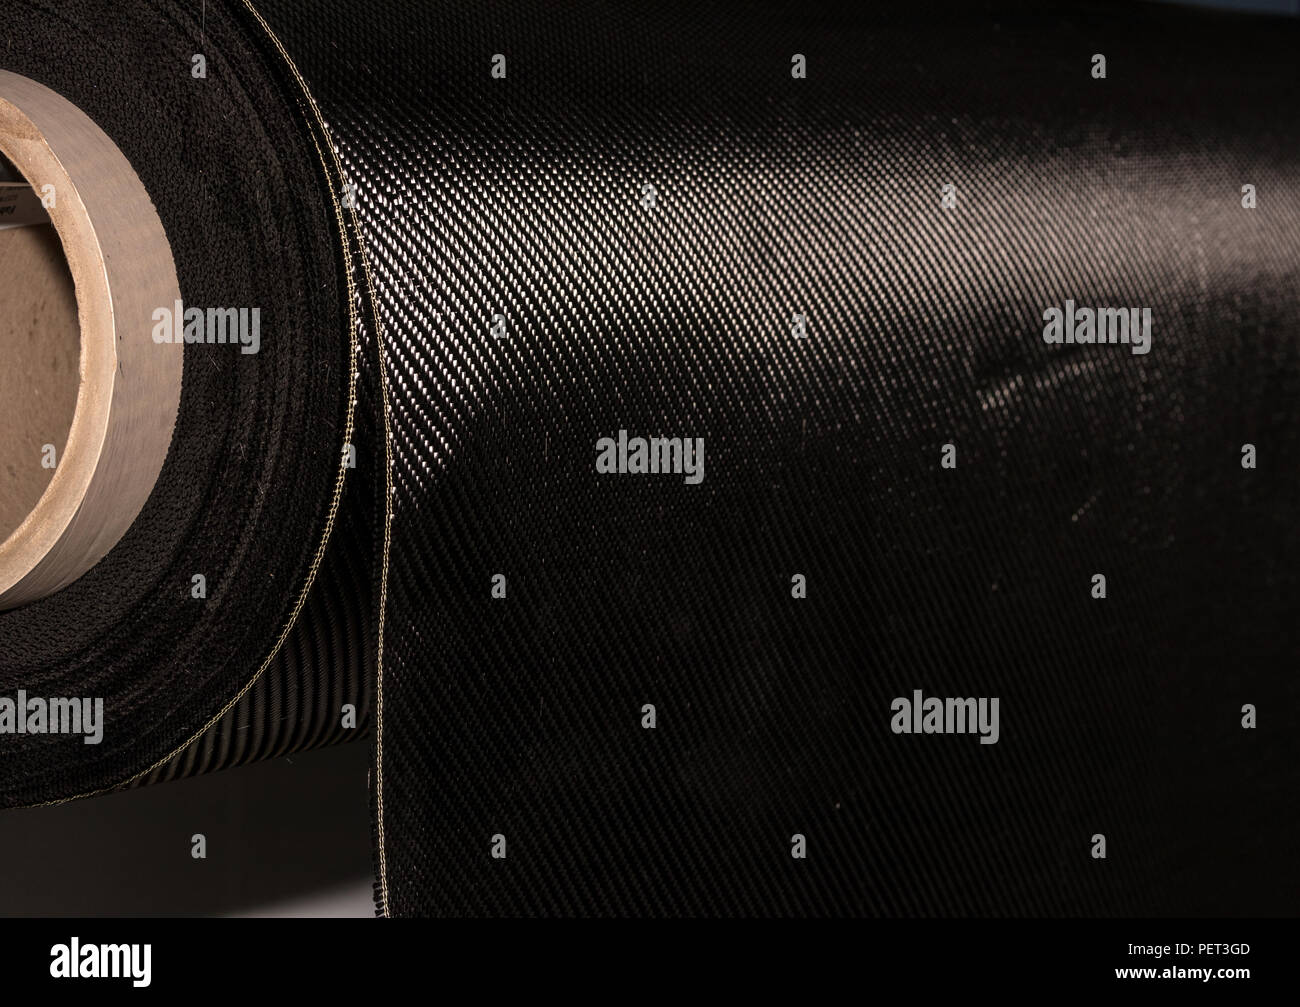 Carbon fiber rolled weave composite material industry - Stock Image